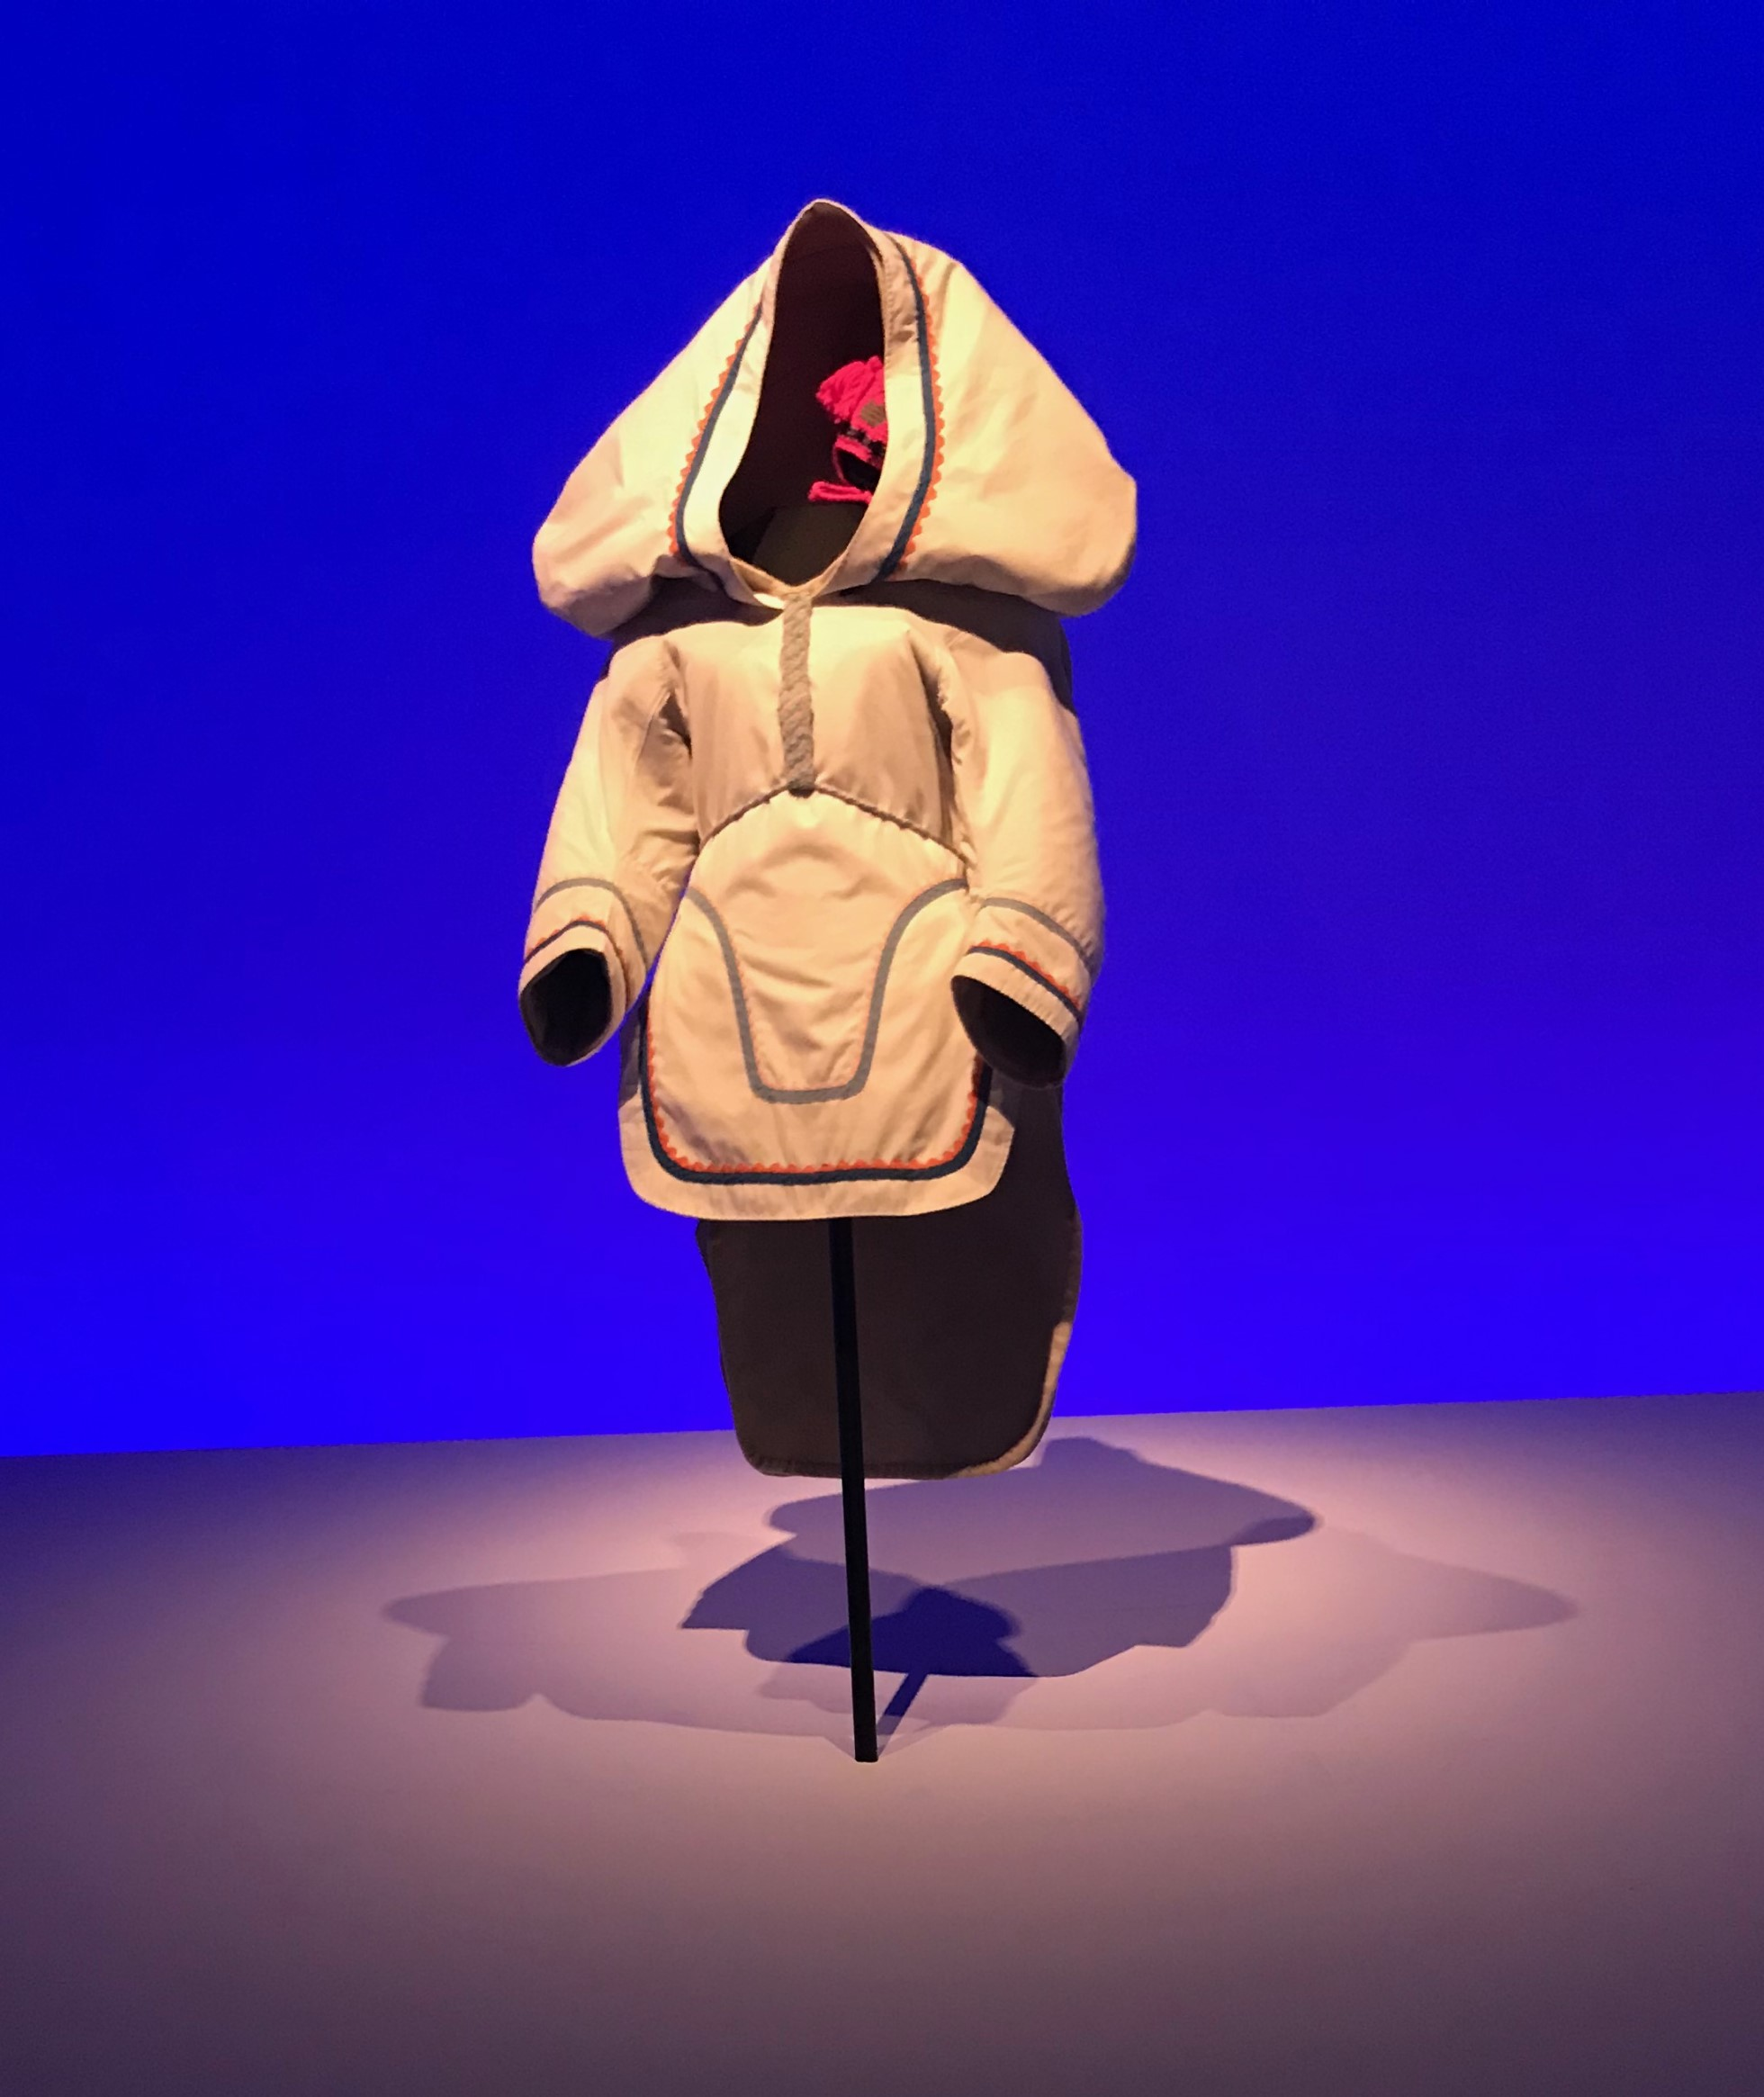 Photograph of an amauti parka in the exhibition. The amautis is a cream or off white. It has the characteristic large hood and tail at the back.  There is dramatic lighting in the exhibition with a dark blue colour to the wall in the background. There are strong shadows.